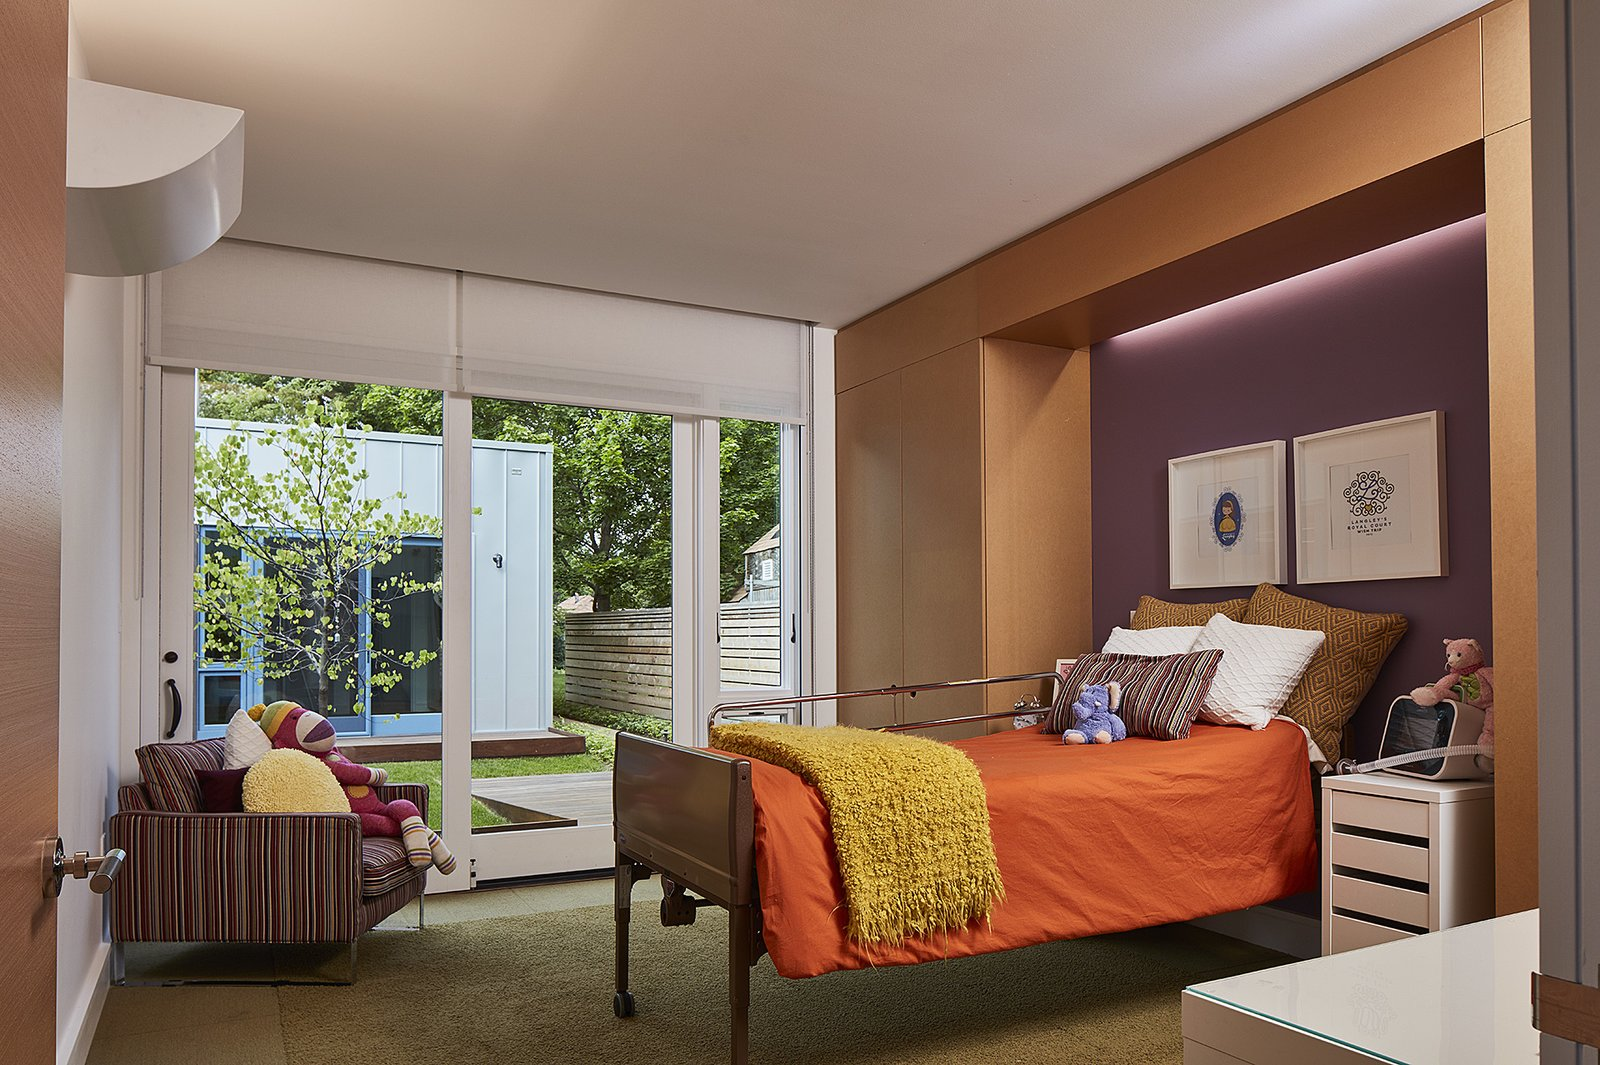 The children's bedrooms have access to their own shared courtyard.